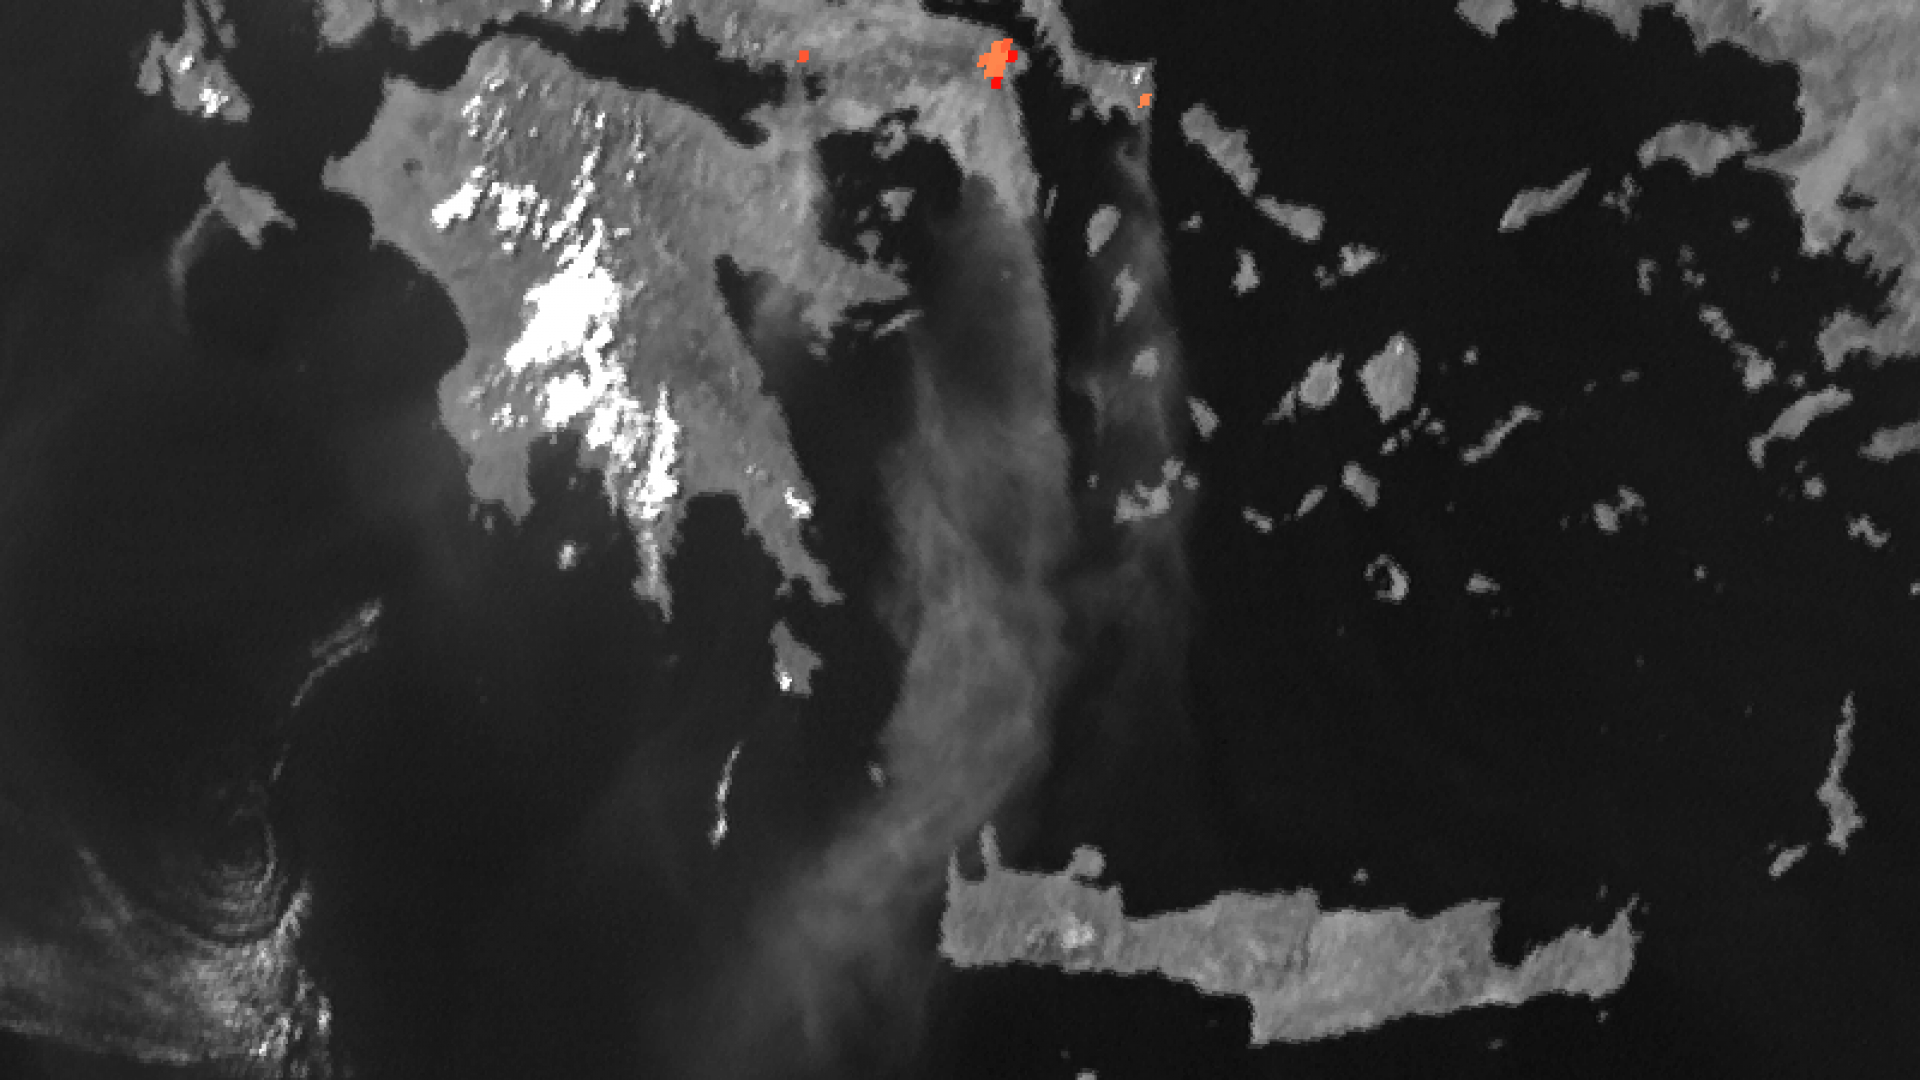 Wild fires threaten the city of Athens